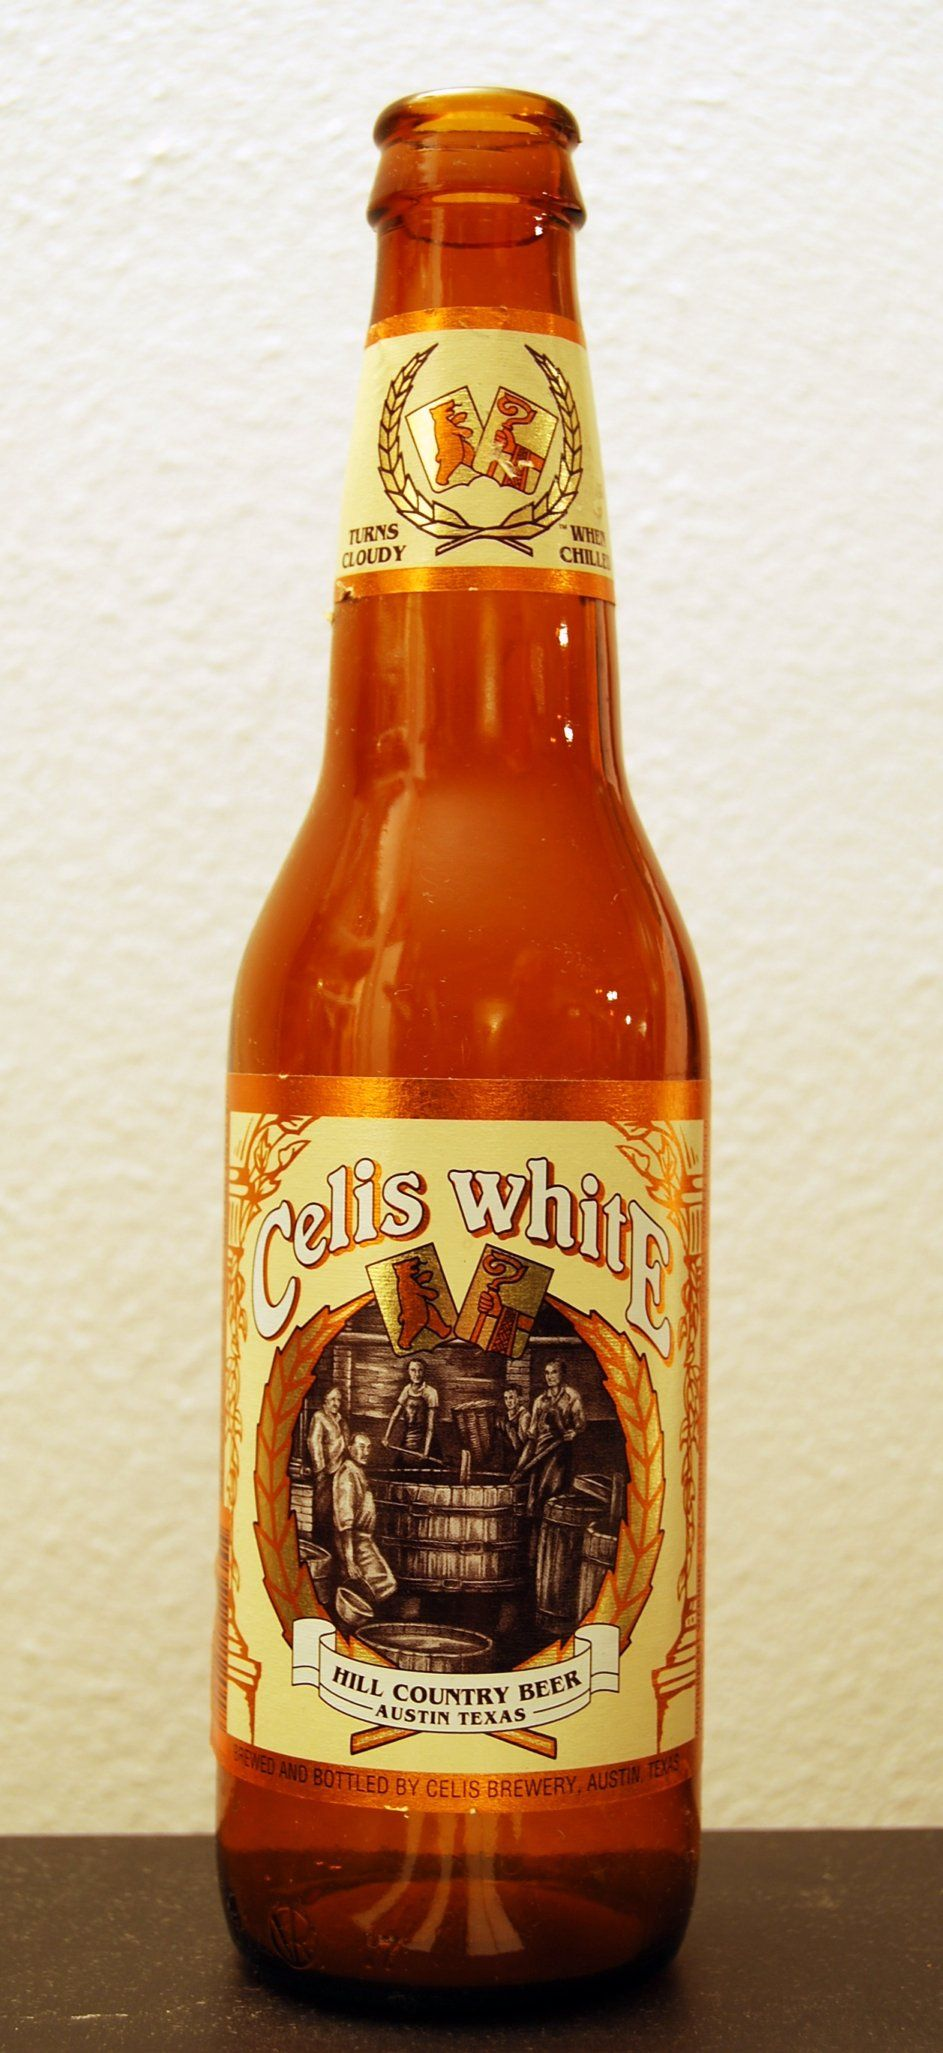 Celis White Jpg 943 2053 Beer Beer Bottle Texas Beer